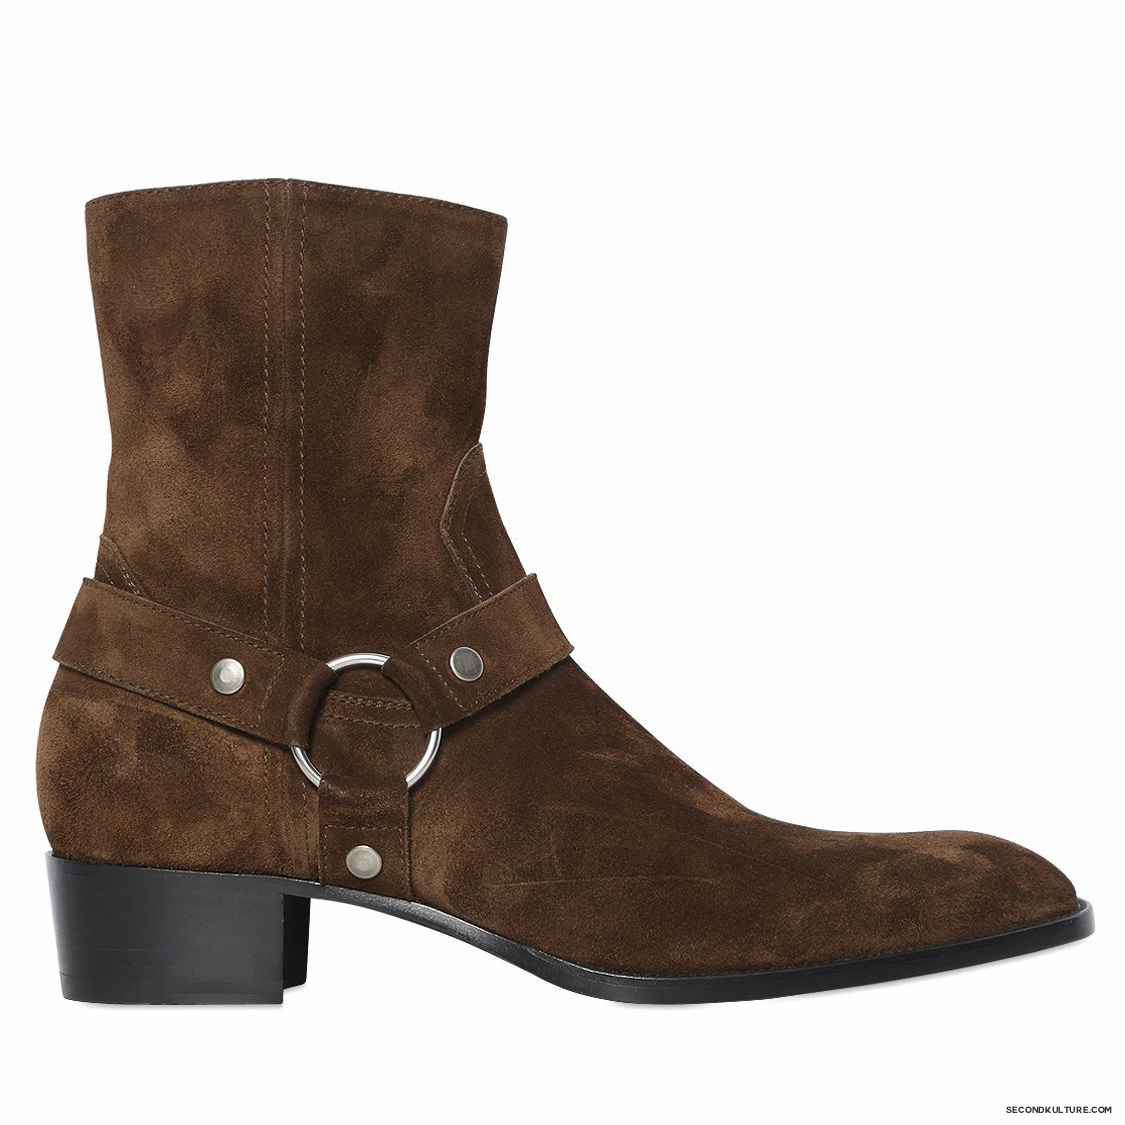 Saint-Laurent-40mm-Dark-Brown-Wyatt-Suede-Harness-Ankle-Boots-Fall-Winter-2015-1